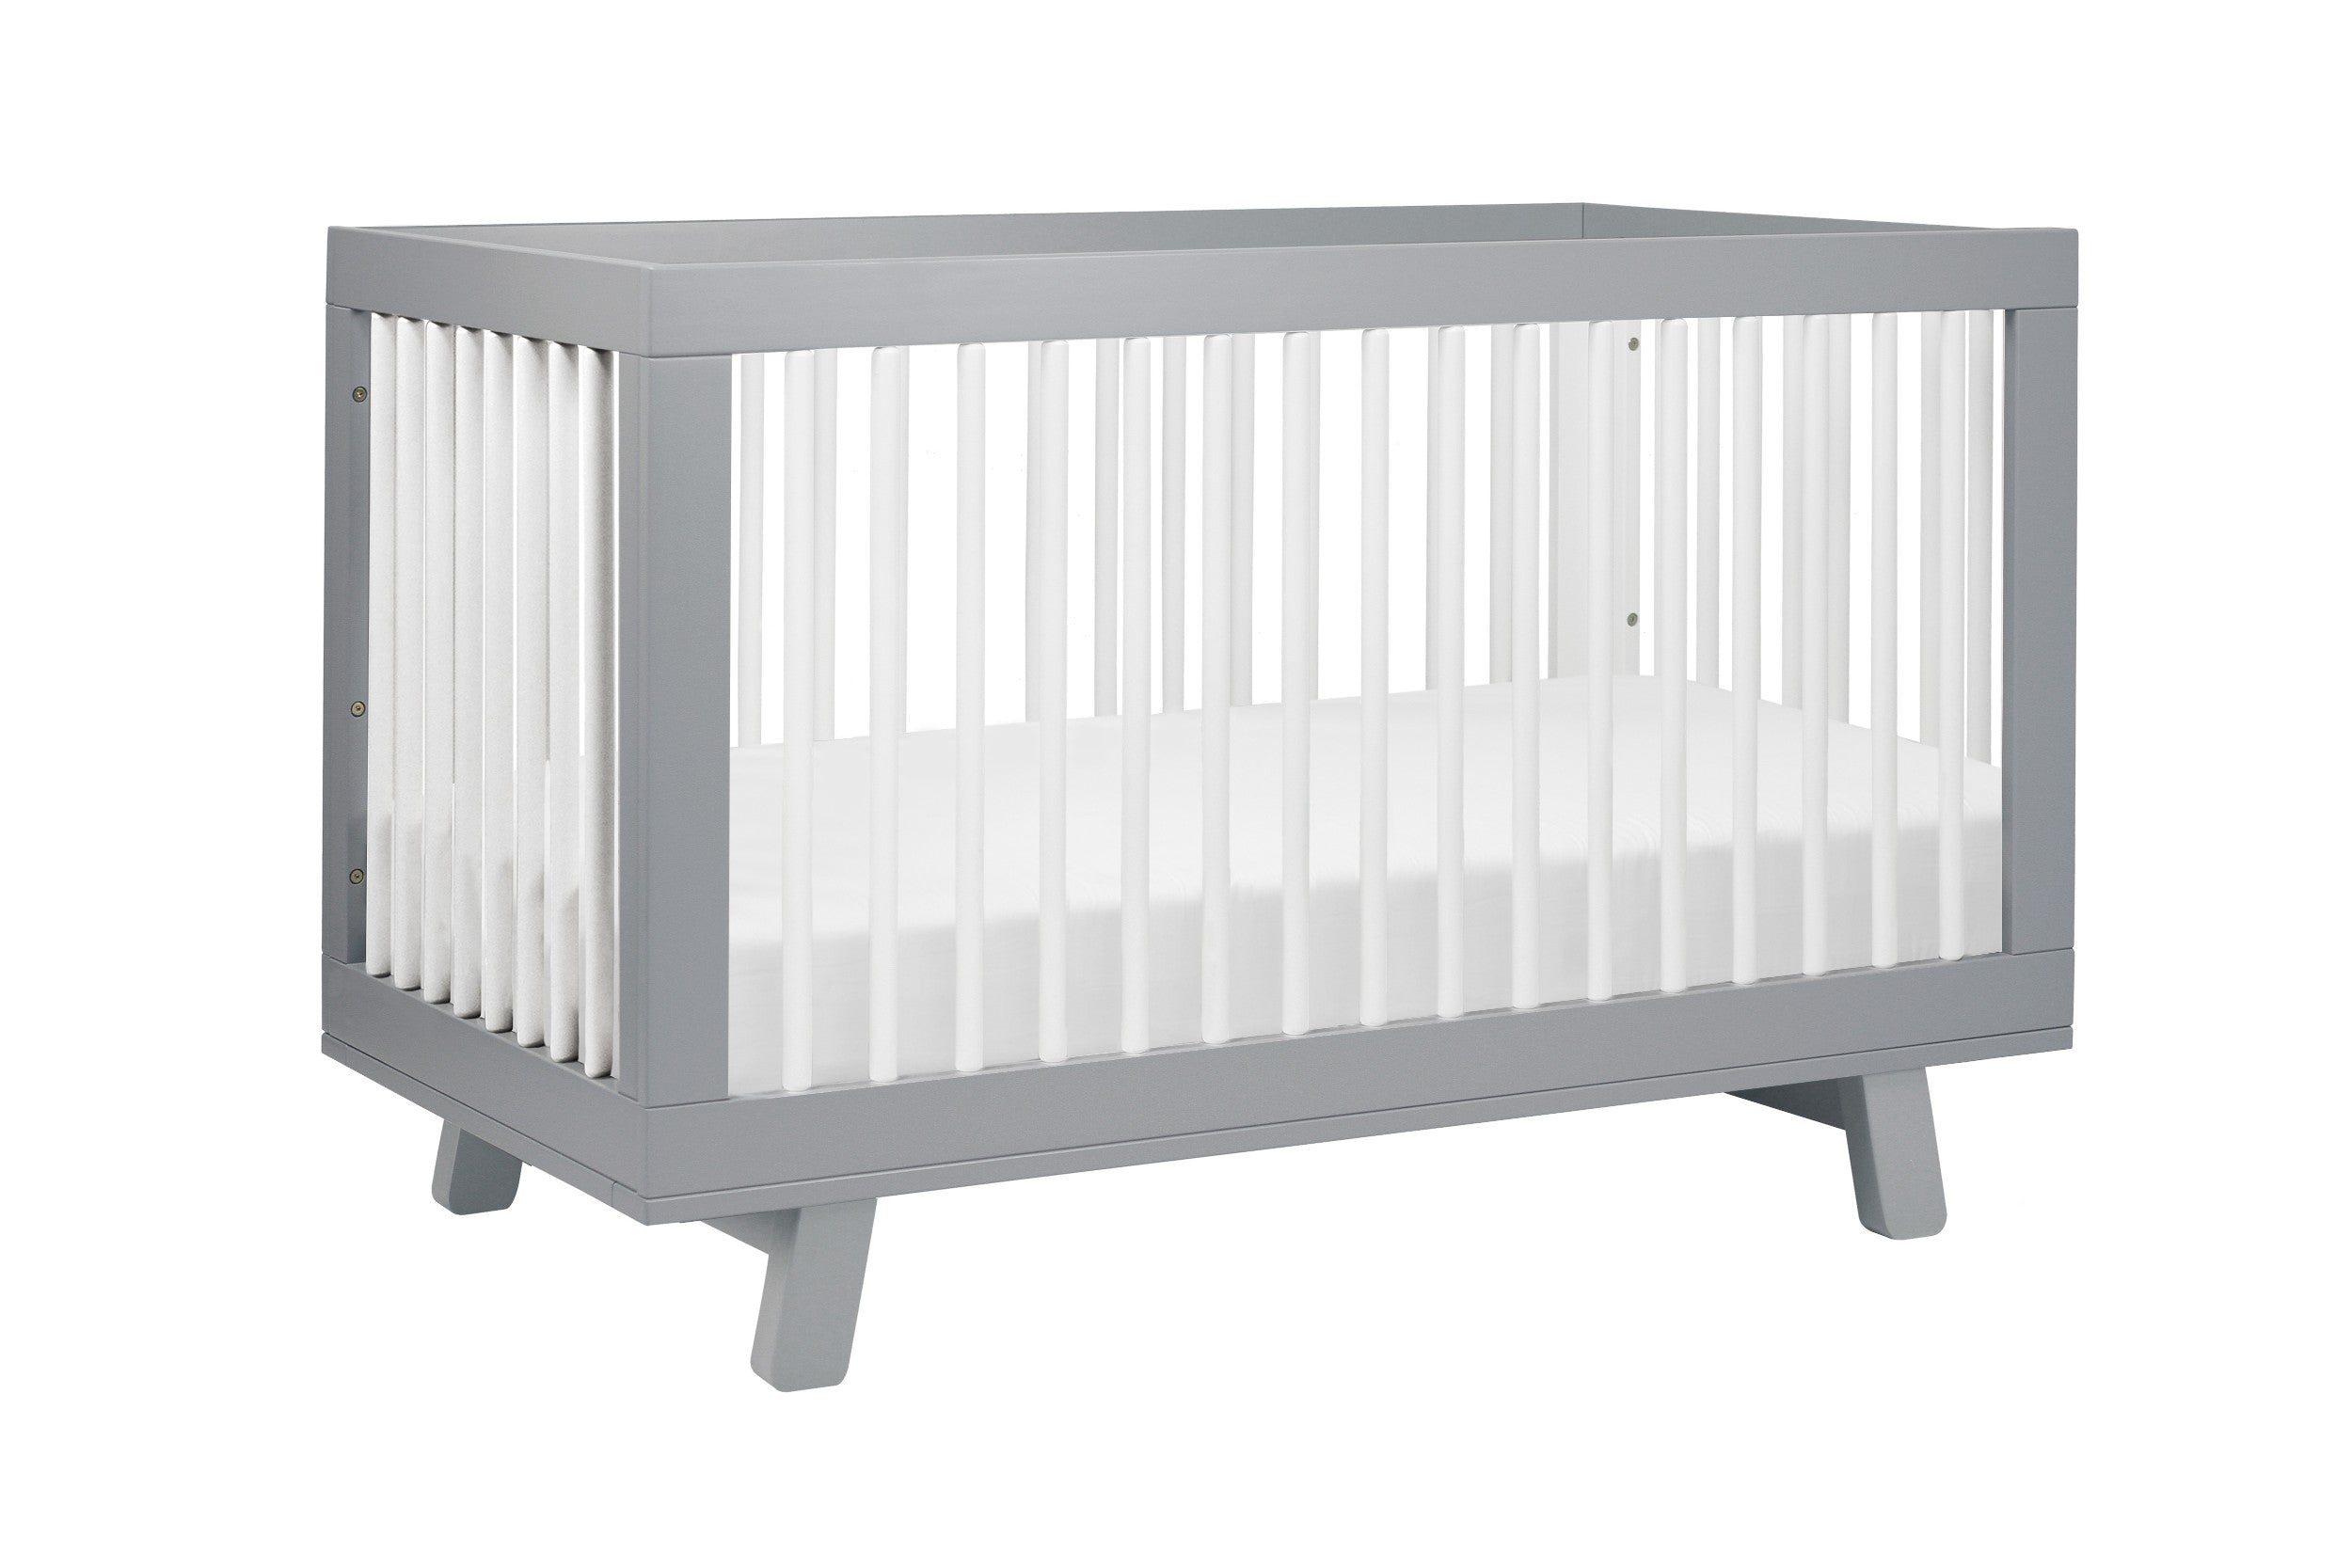 cach nursery crib ideas pin drawers baby collection hill nurseries collections haven with furniture white